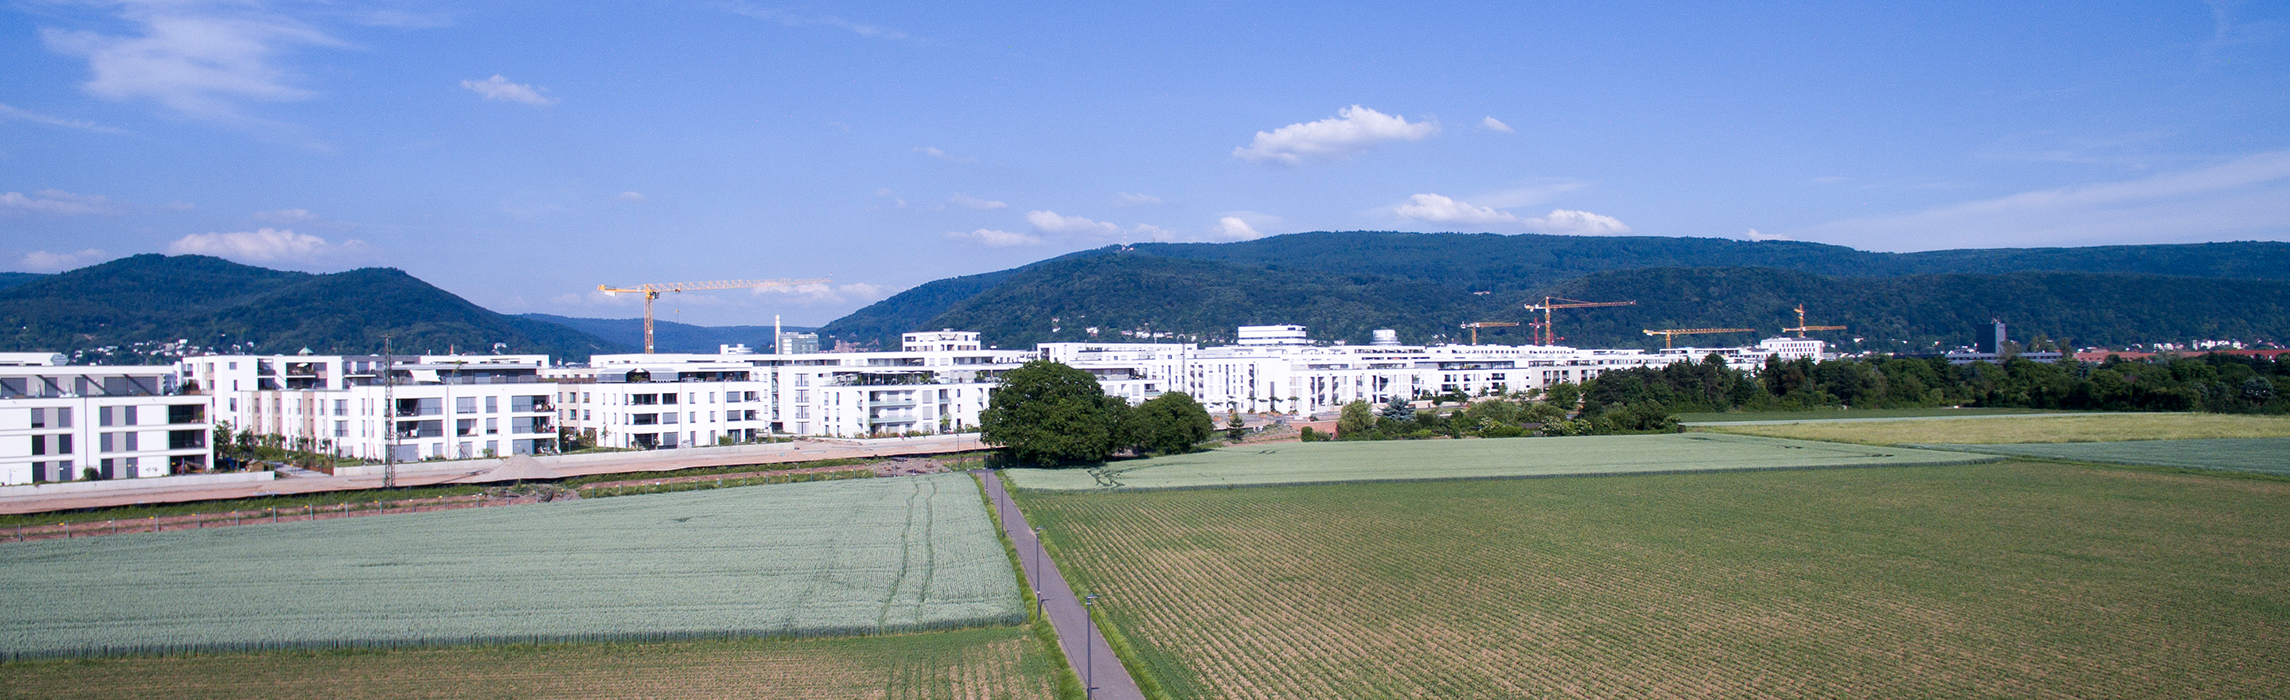 Panorama of Bahnstadt (Photo: Buck)